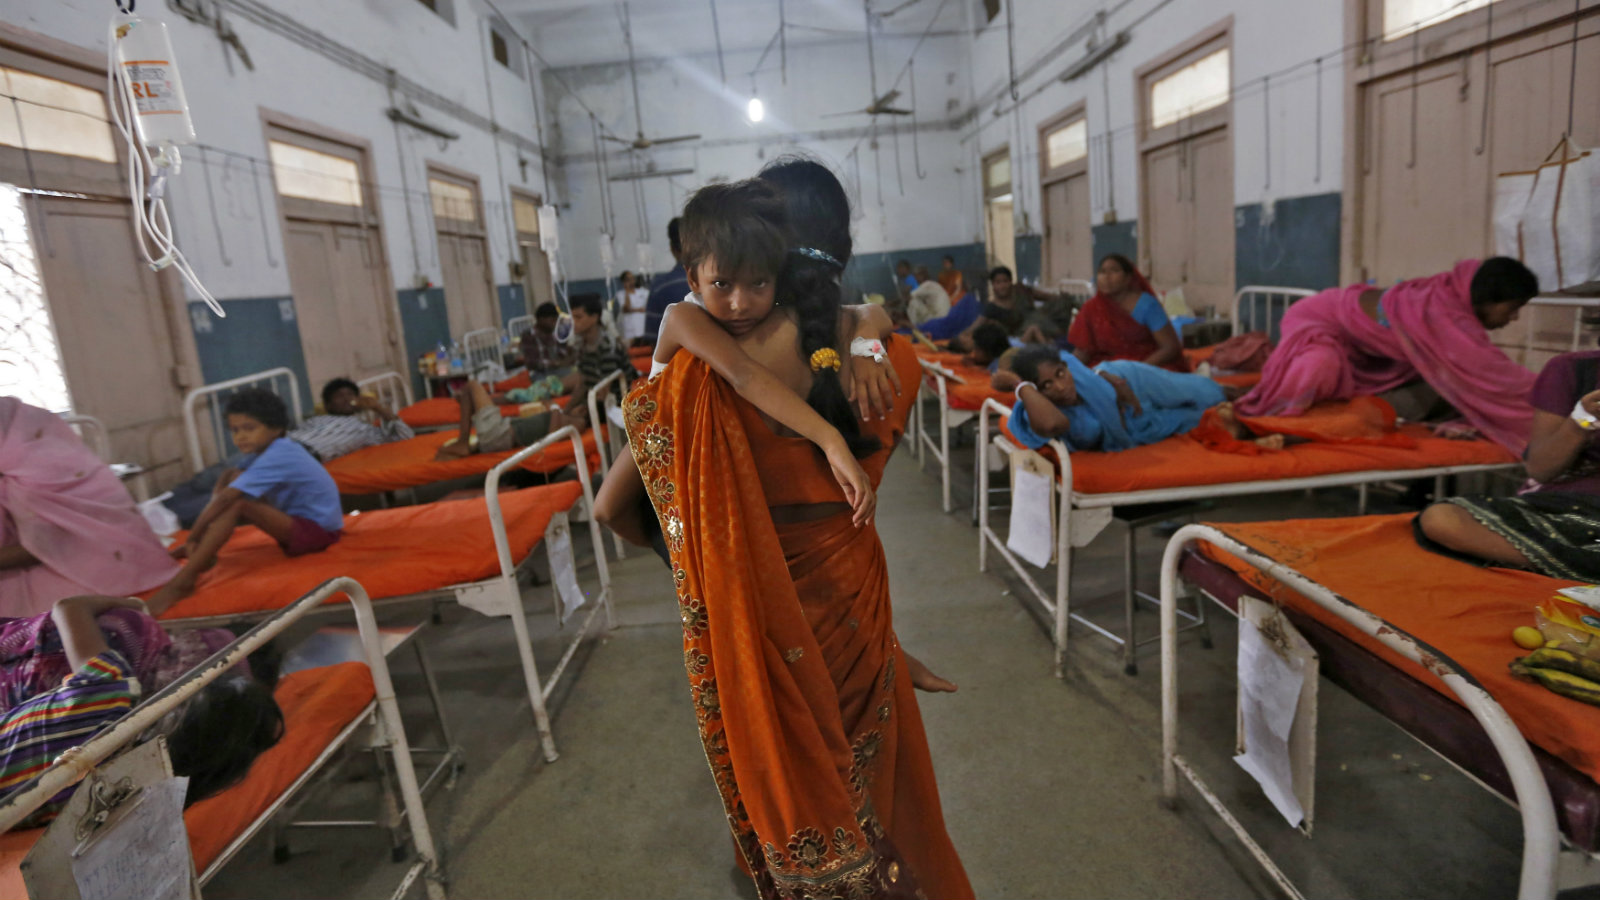 A woman carries her niece who got sick after consuming contaminated meals given to children at a school on Tuesday, in the eastern Indian city of Patna July 18, 2013. The Indian government announced on Thursday it would set up an inquiry into the quality of food given to school pupils in a nationwide free meal scheme after at least 23 children died in one of the deadliest outbreaks of mass poisoning in years.